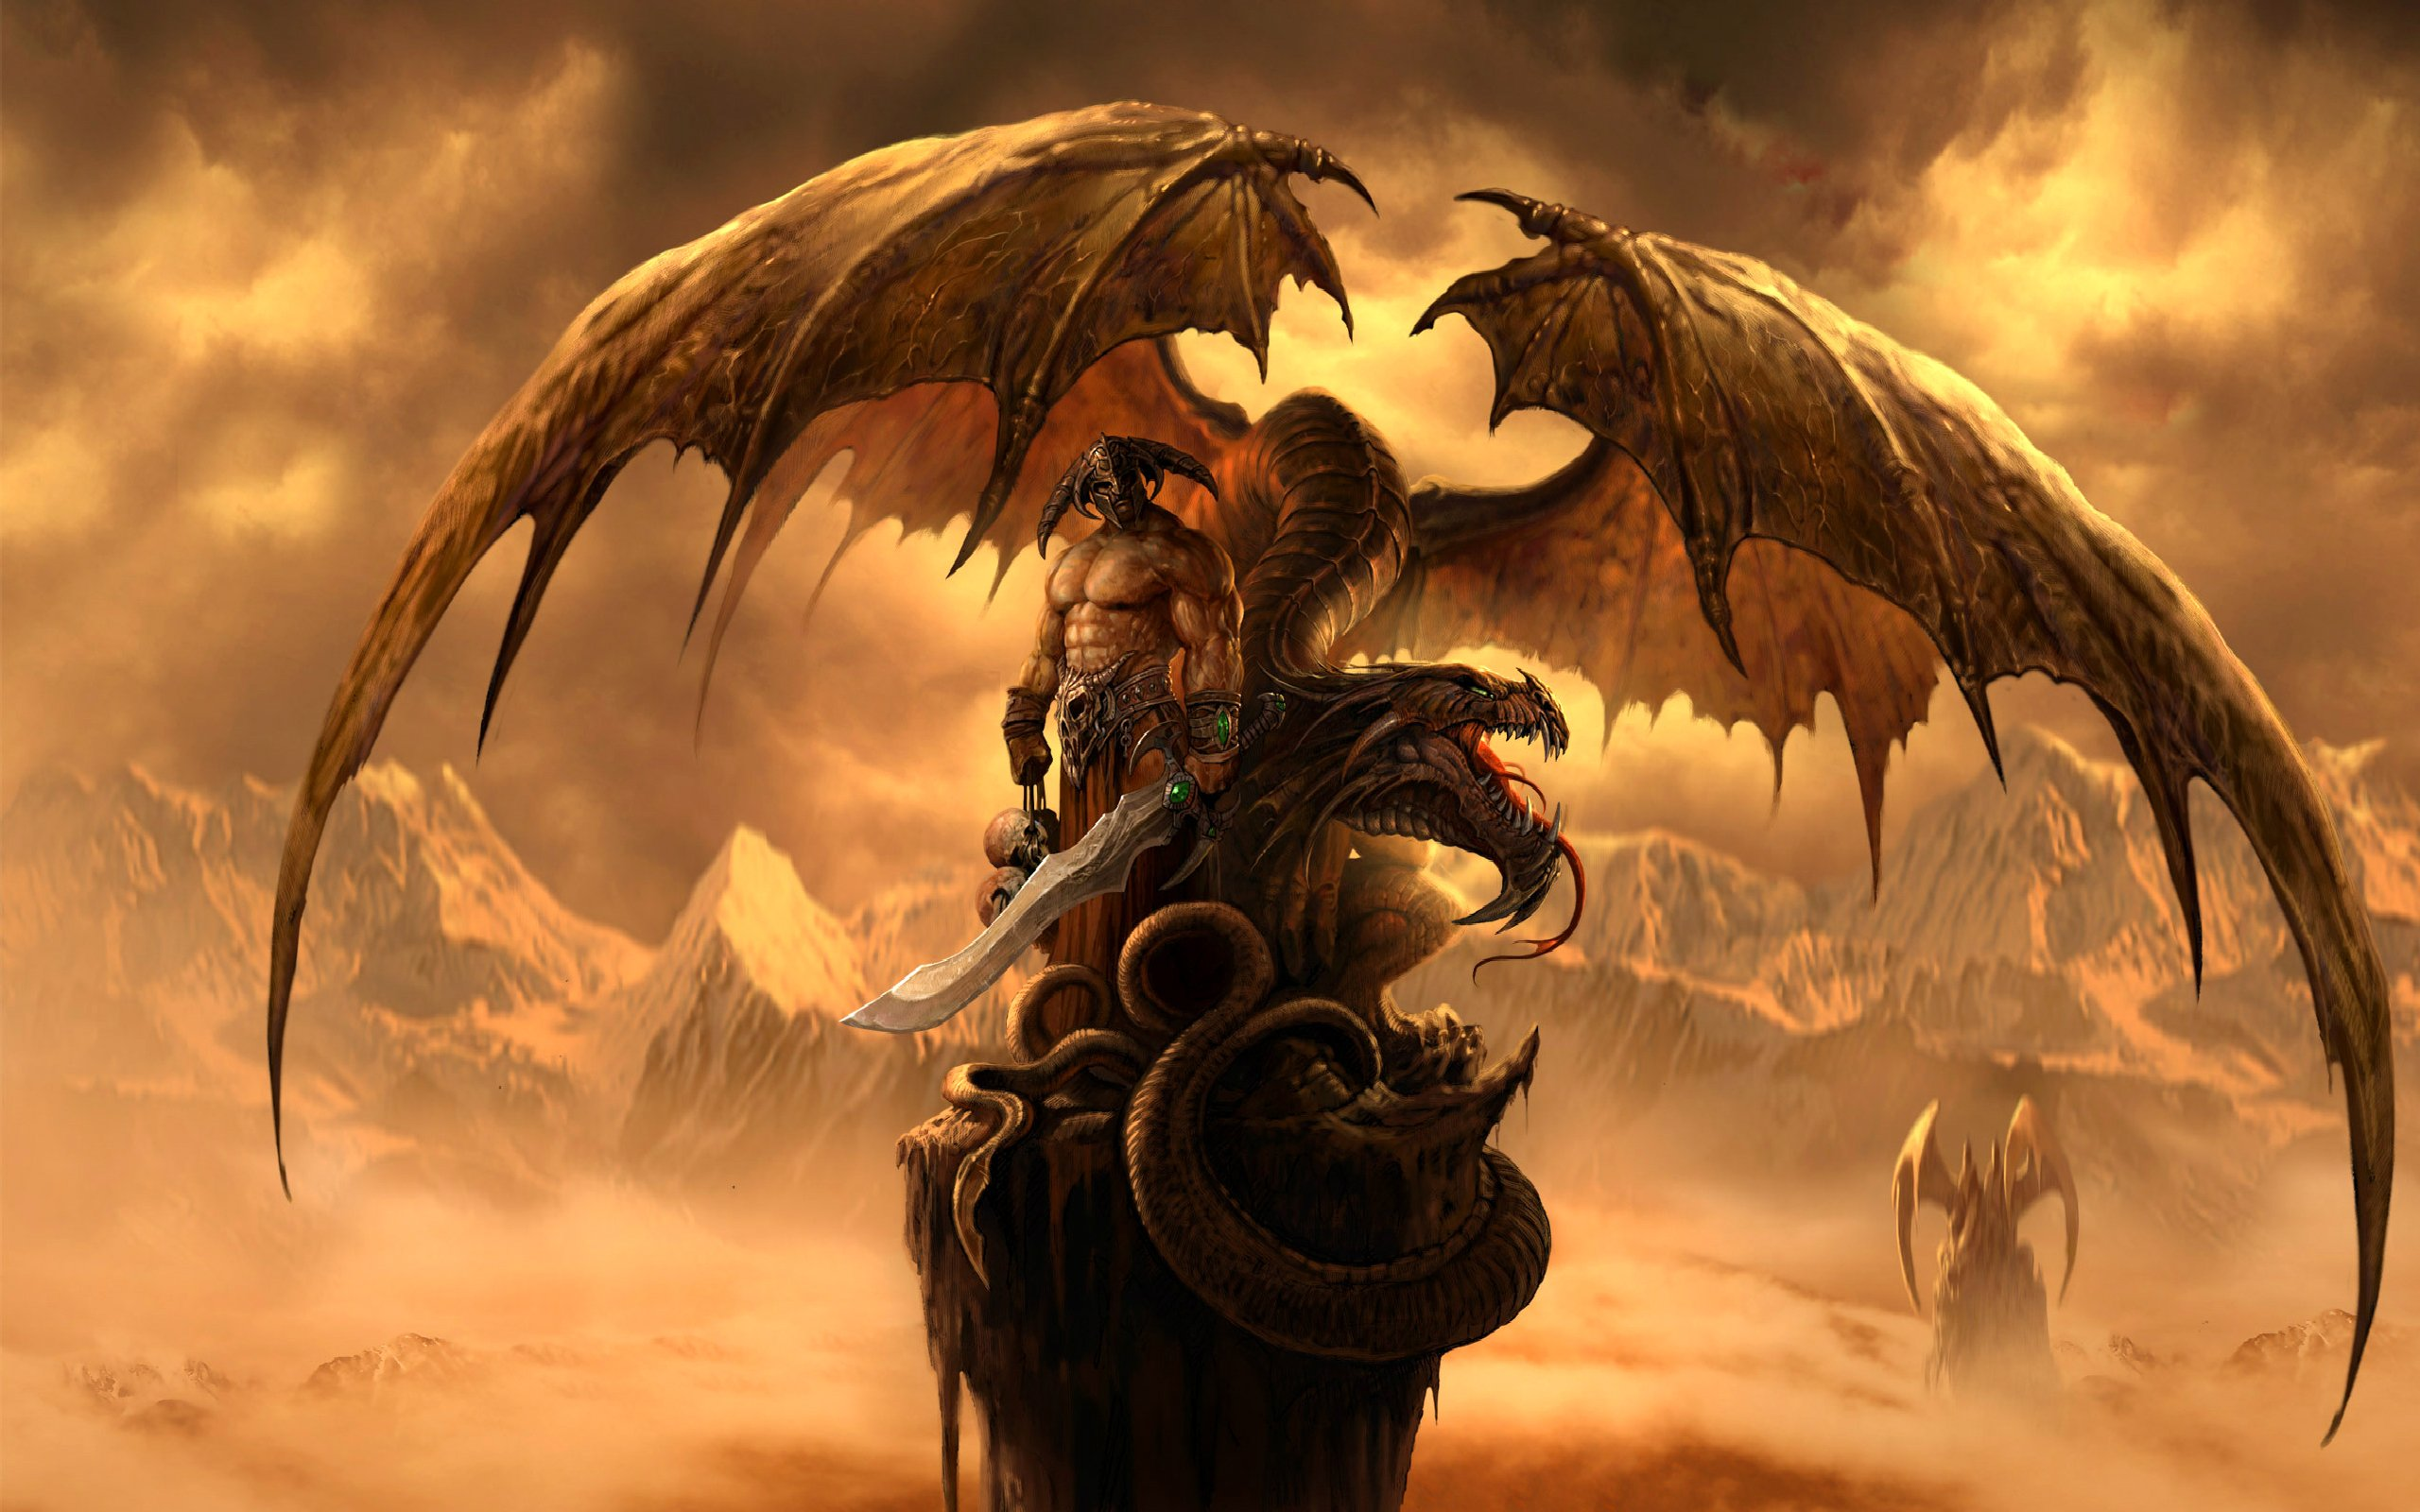 Fantasy Dragon dragons 27155090 2560 1600jpg 2560x1600